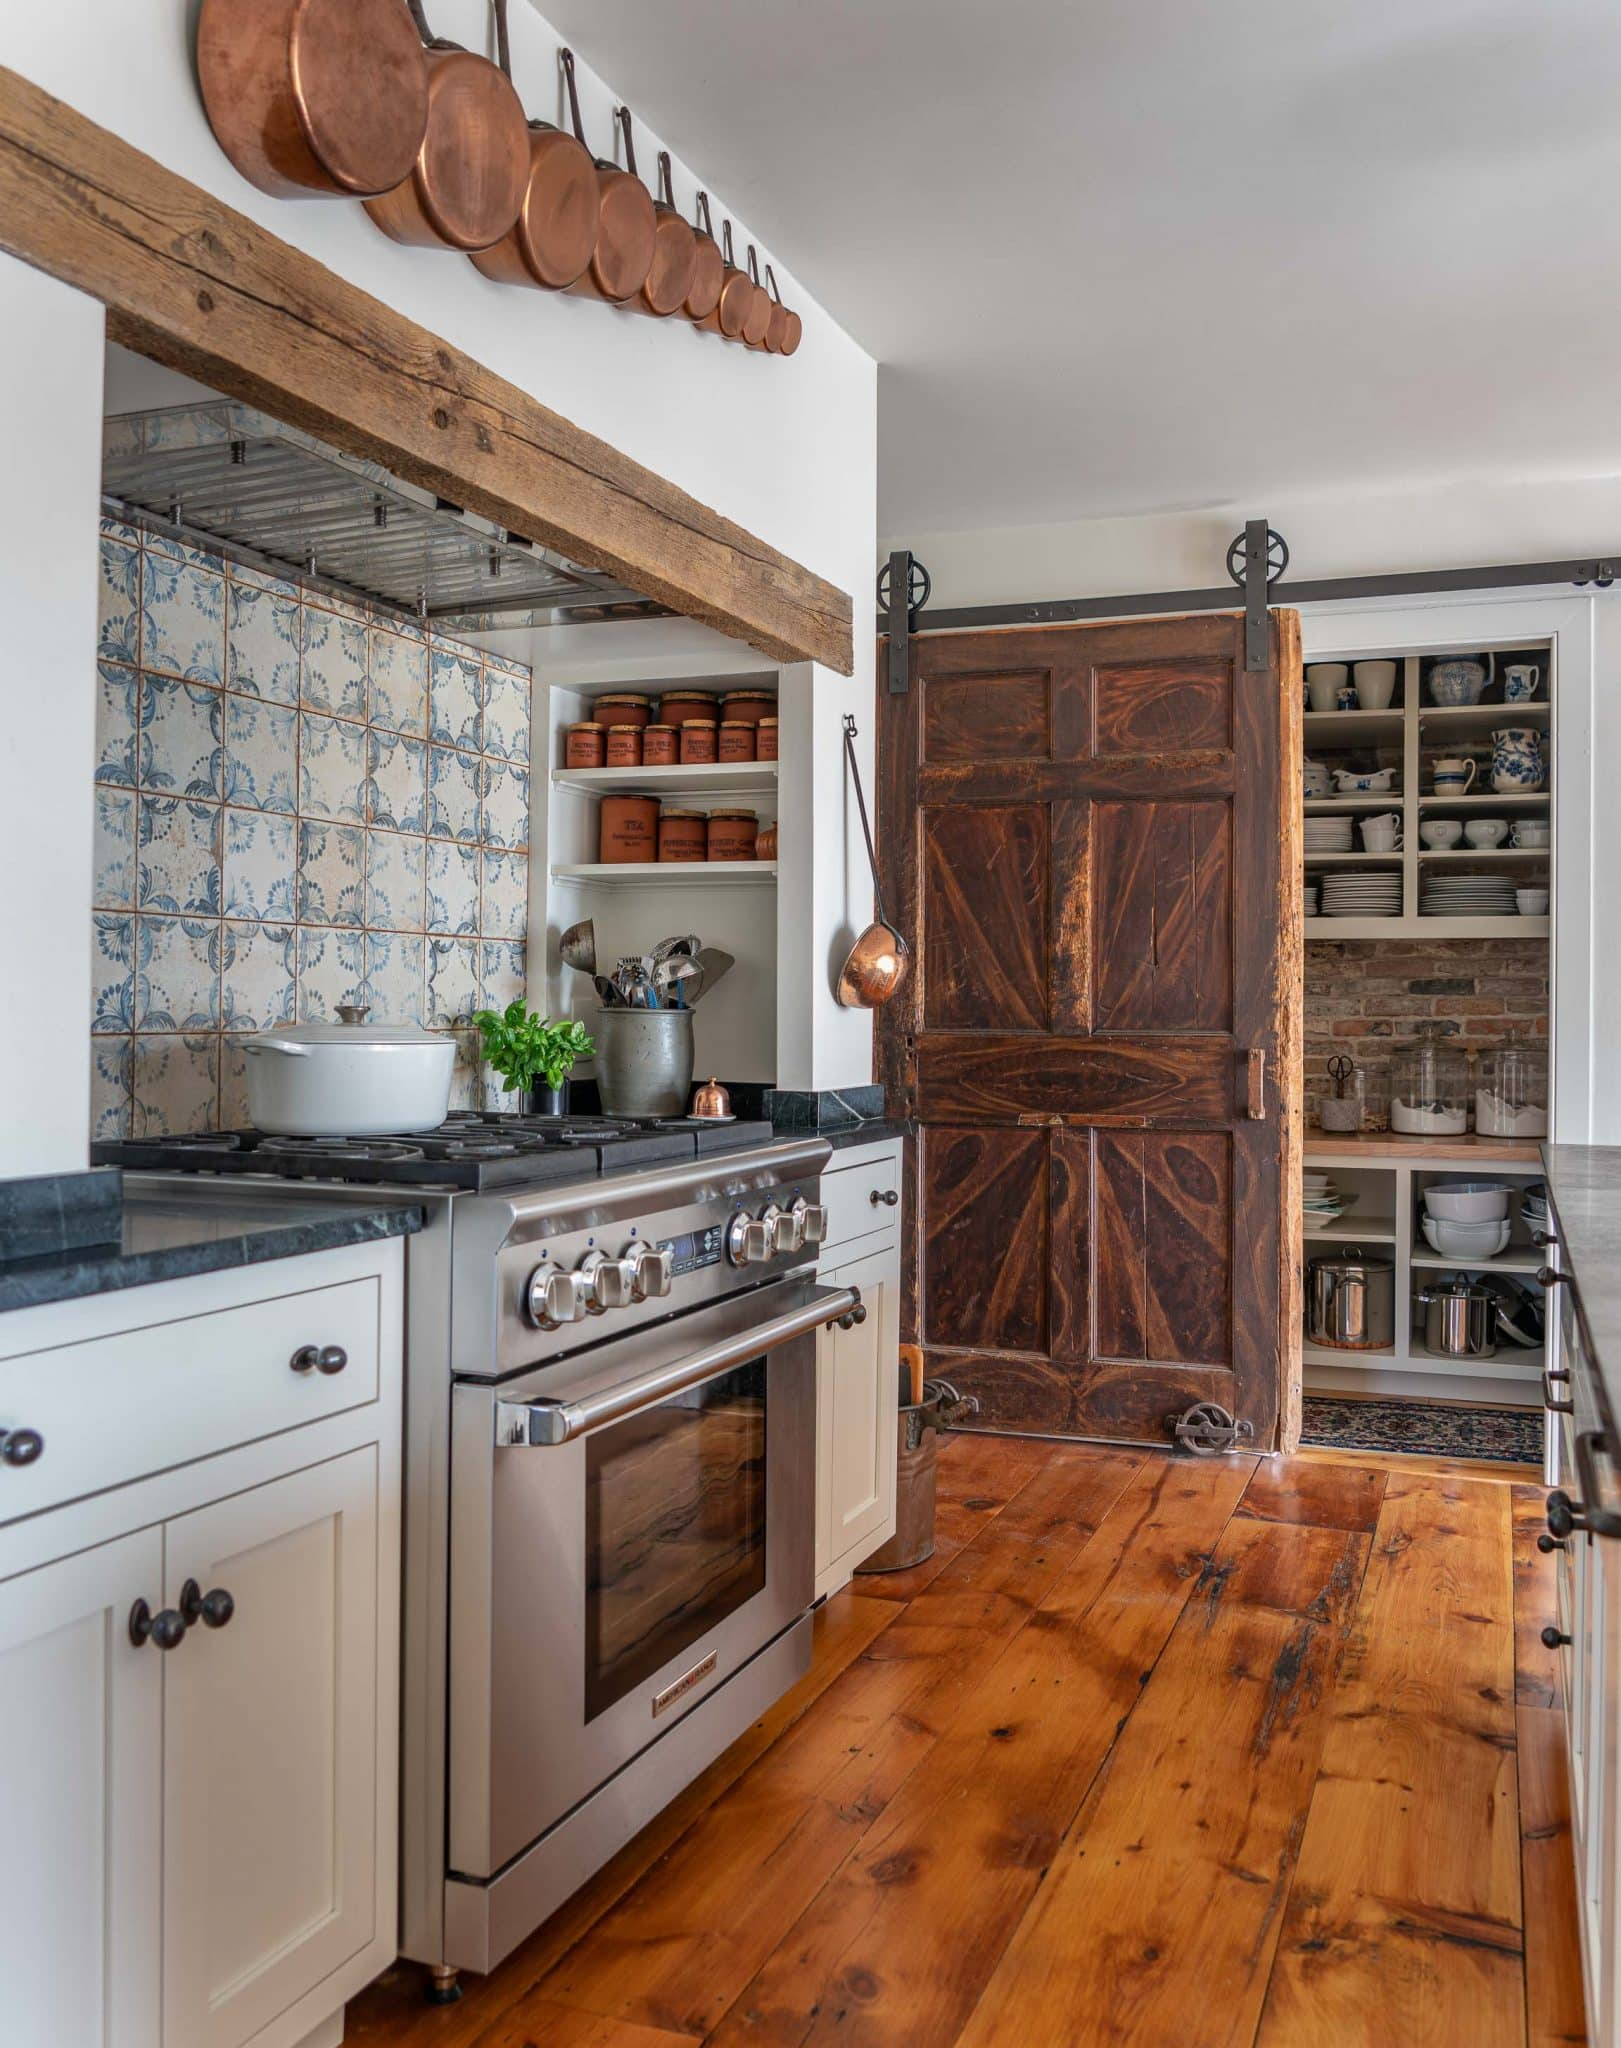 Arrowhead Farmhouse Newburyport MA Kitchen